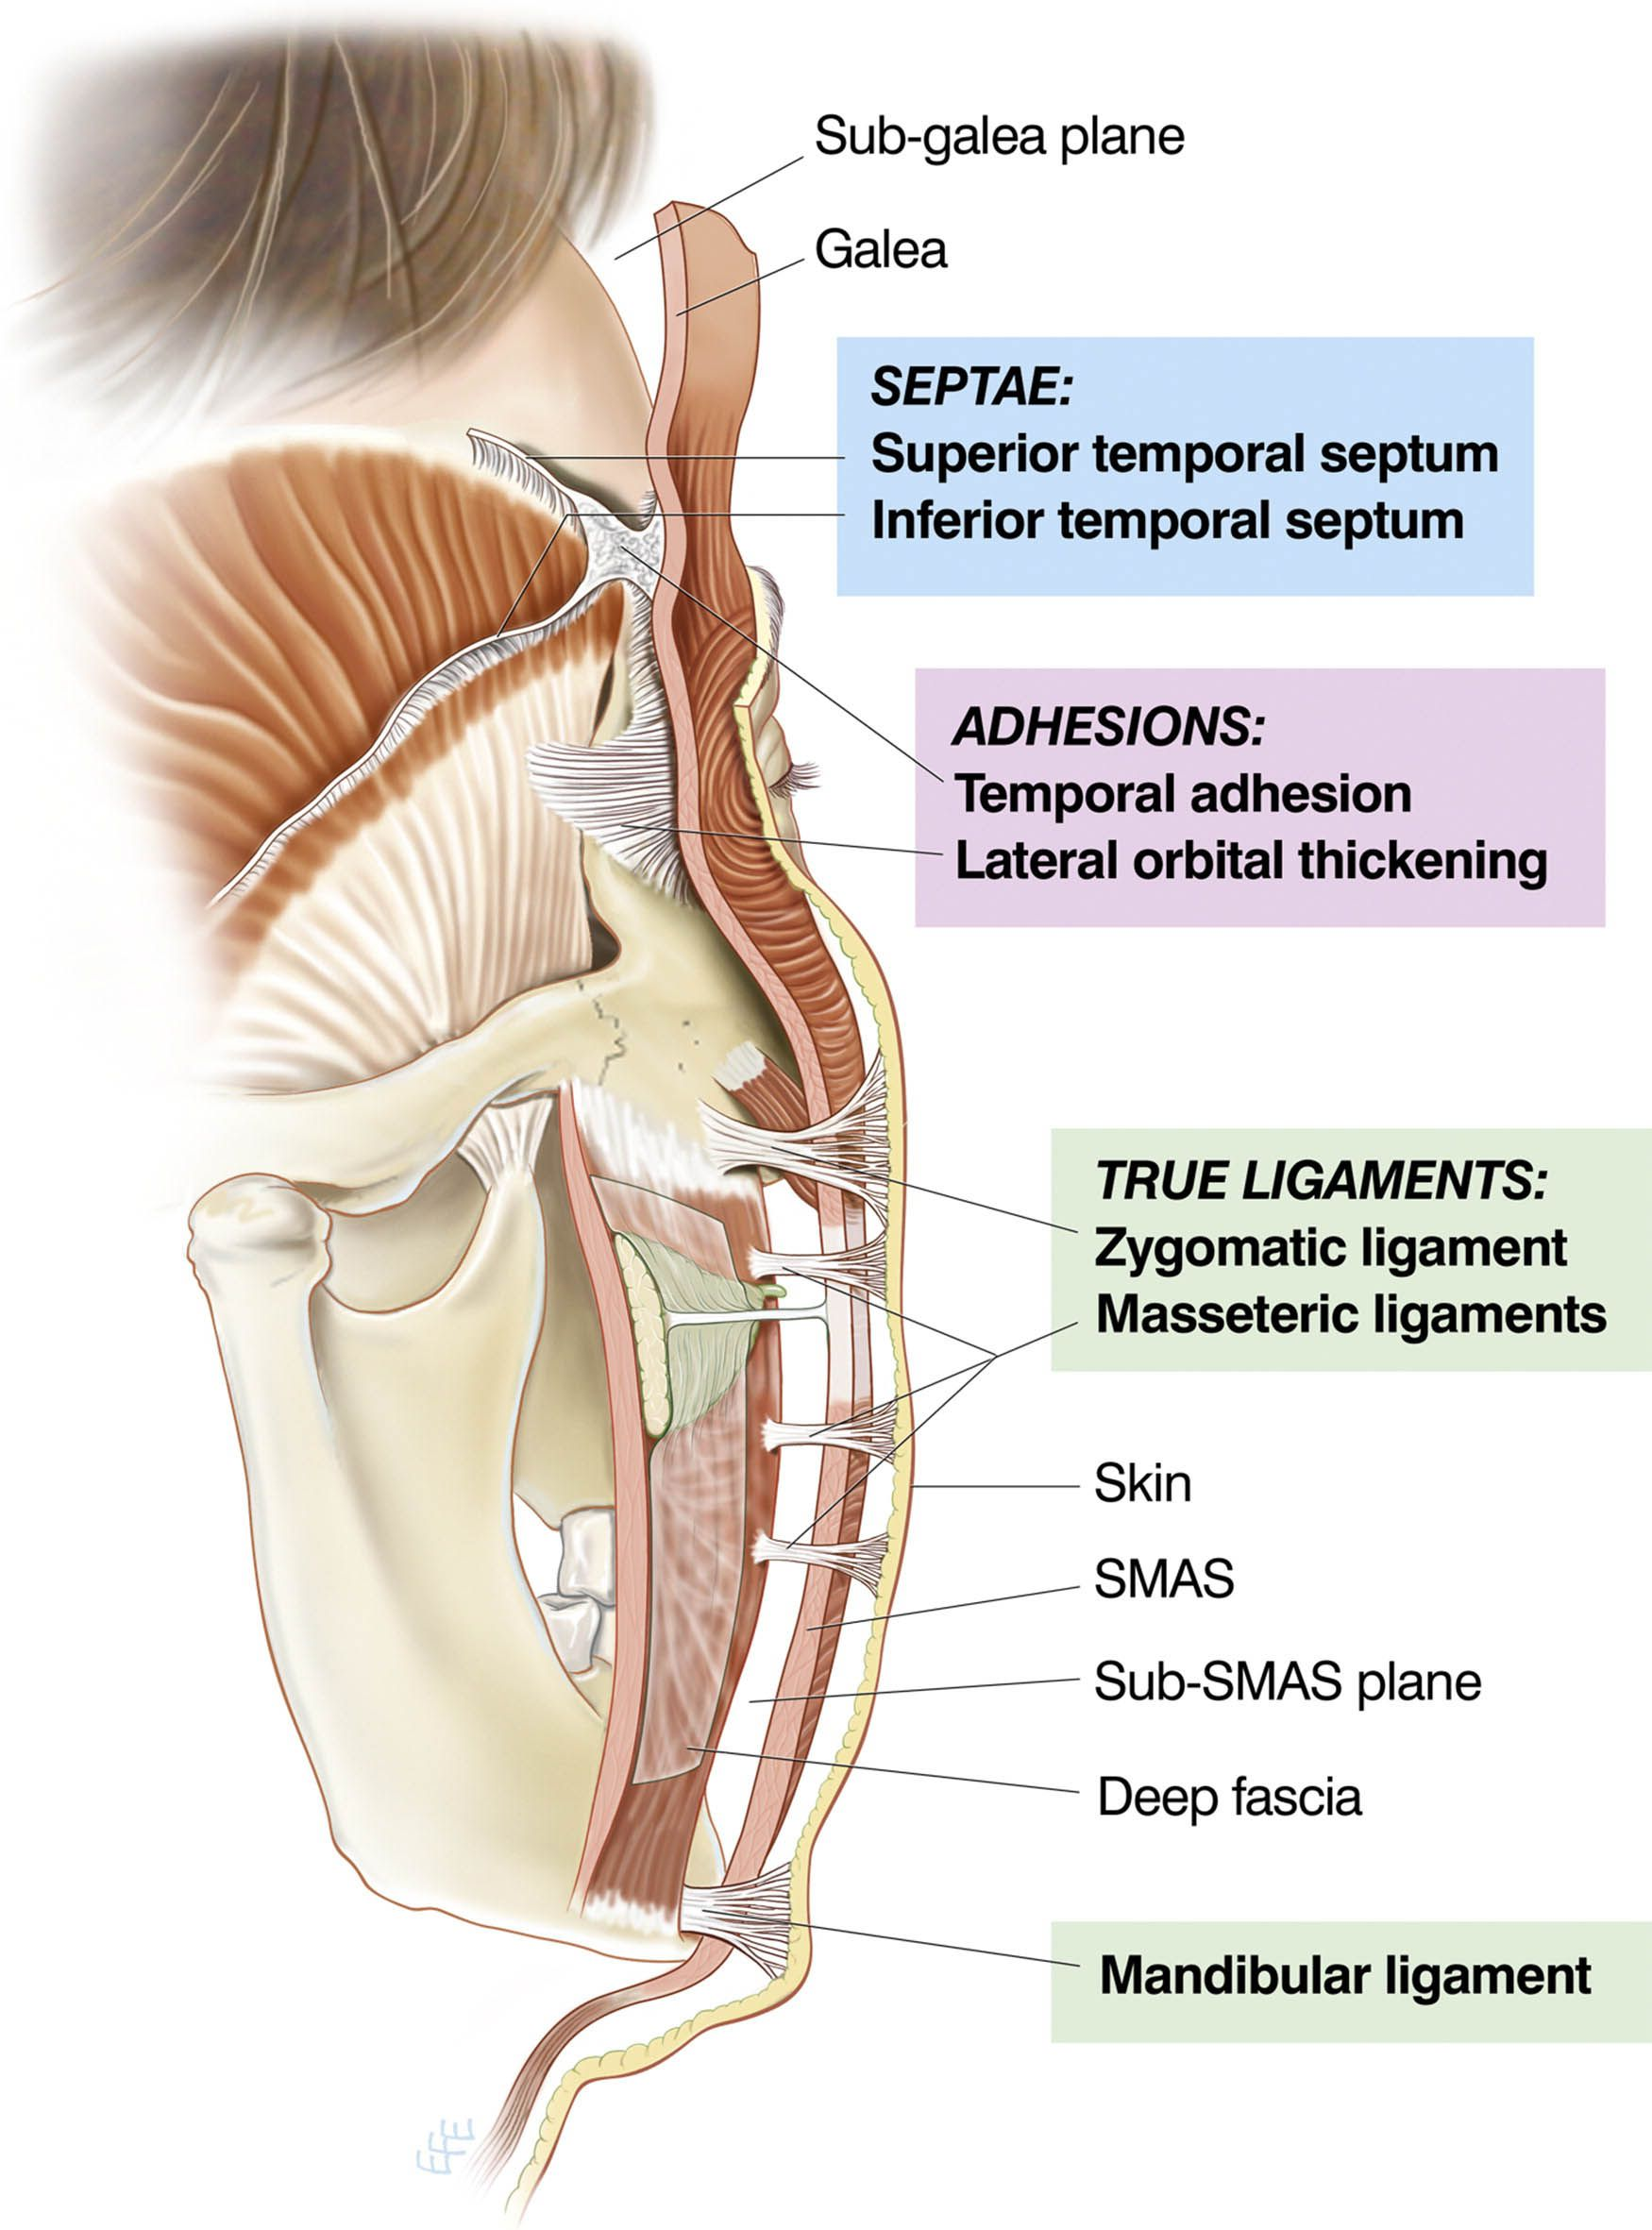 Fascia anatomy of the human back in detail - www.anatomynote.com ...